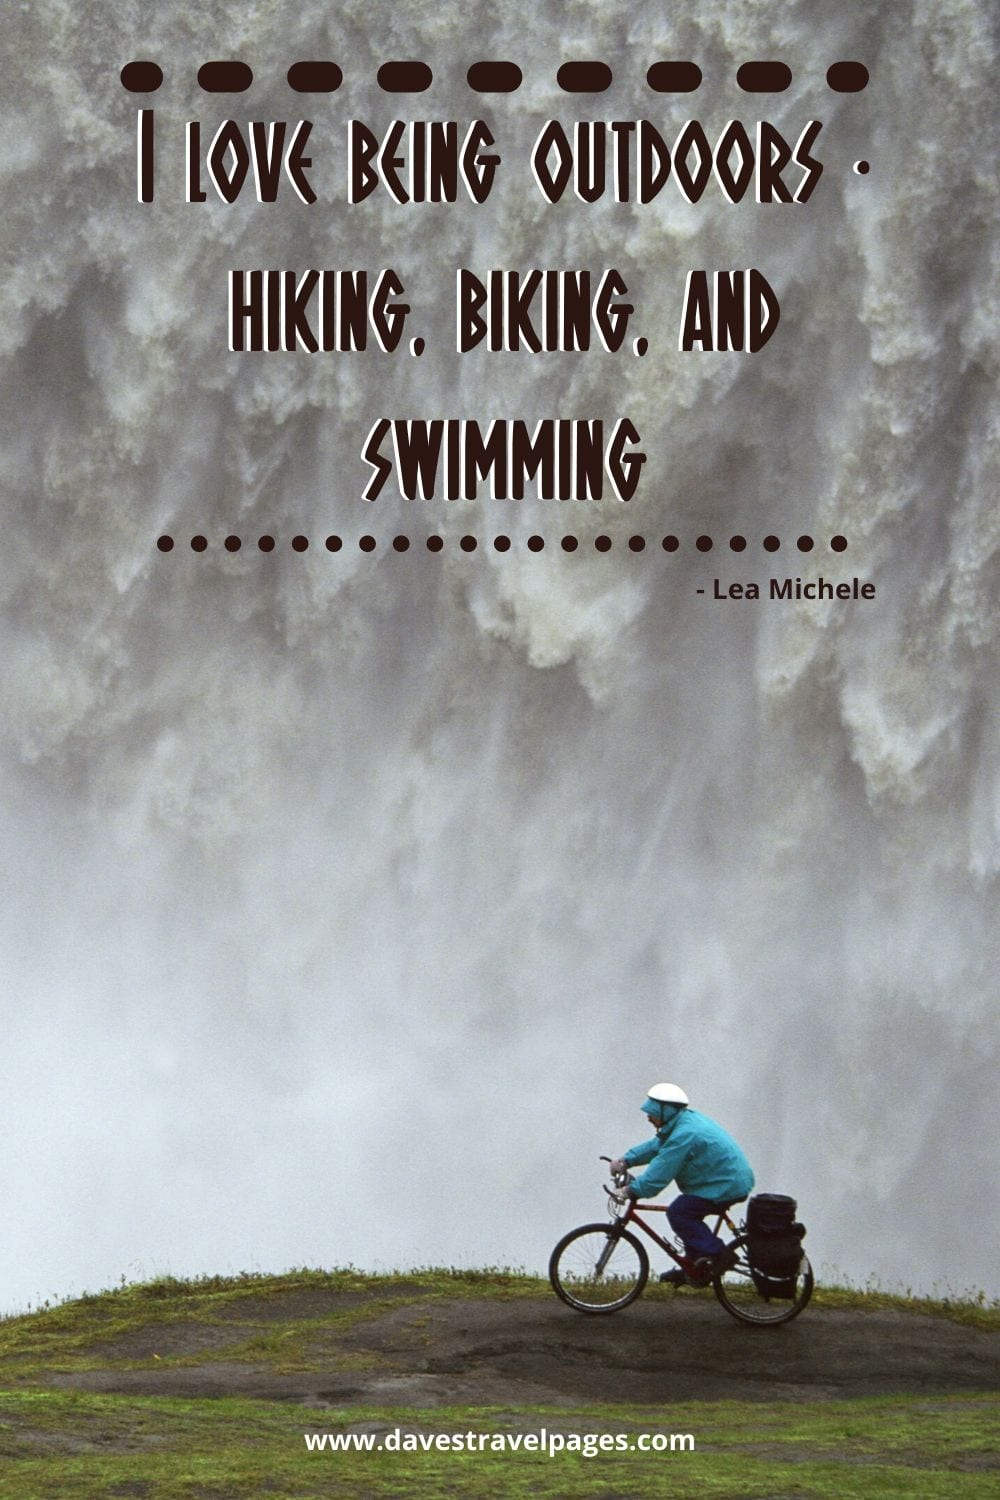 Quotes about hiking and biking - I love being outdoors - hiking, biking, and swimming. Lea Michele